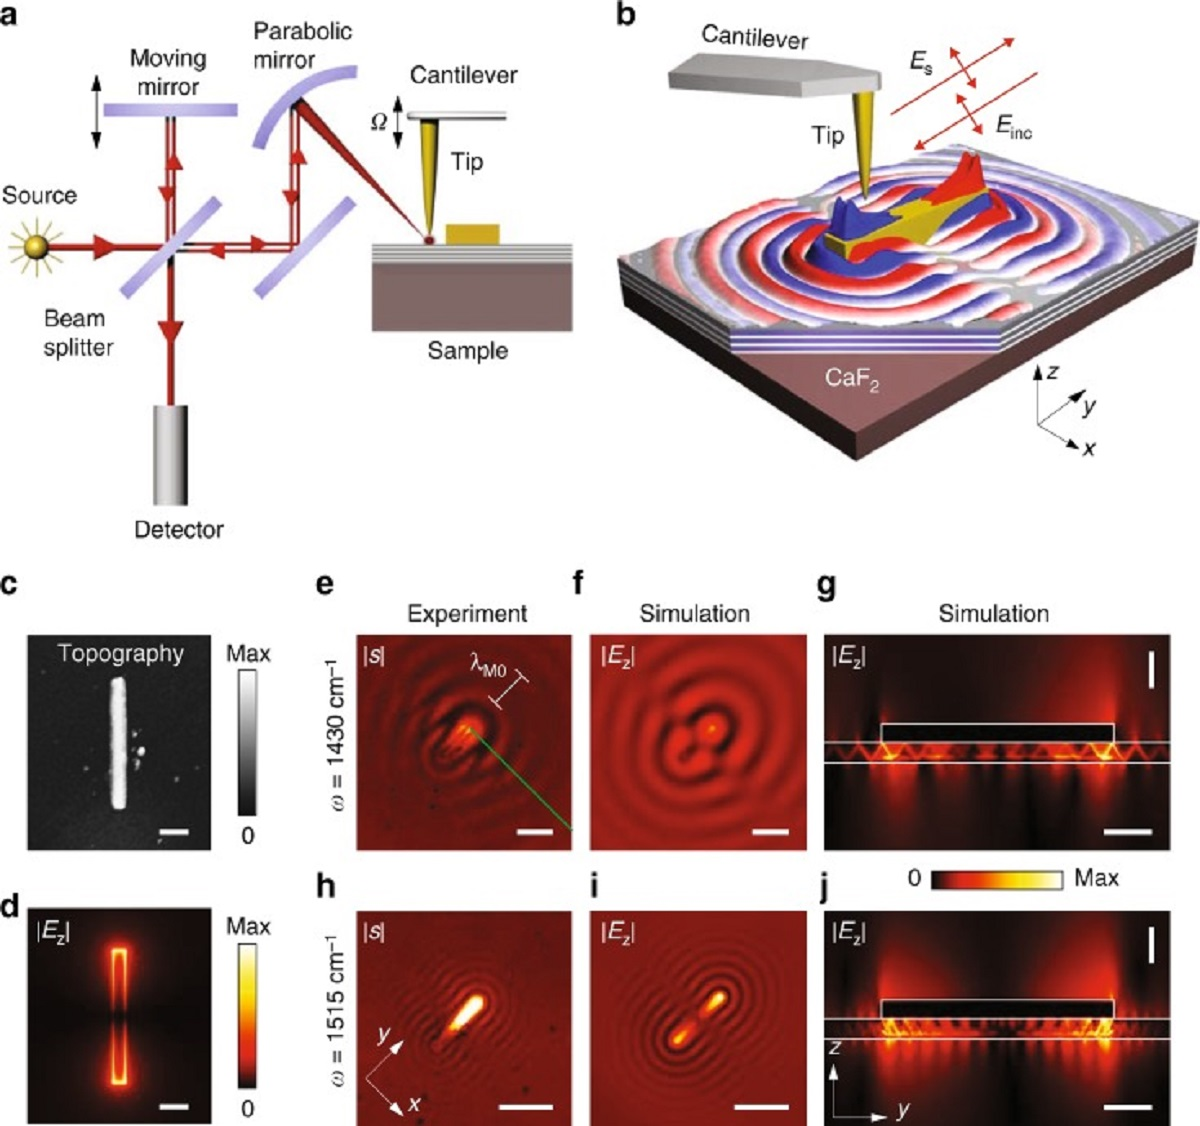 """Figure 4 from """"Launching of hyperbolic phonon-polaritons in h-BN slabs by resonant metal plasmonic antennas"""" by P. Pns-Valencia et al. :   Near-field imaging of the HPhPs launched by the gold antenna. a Schematics of the s-SNOM setup. b Illustration of antenna launching of HPhPs. The spatial distribution of the near-field (shown by the red and blue colors) is adapted from the simulation of Re(Ez). c Topography of the antenna. d Simulated near-field distribution, 